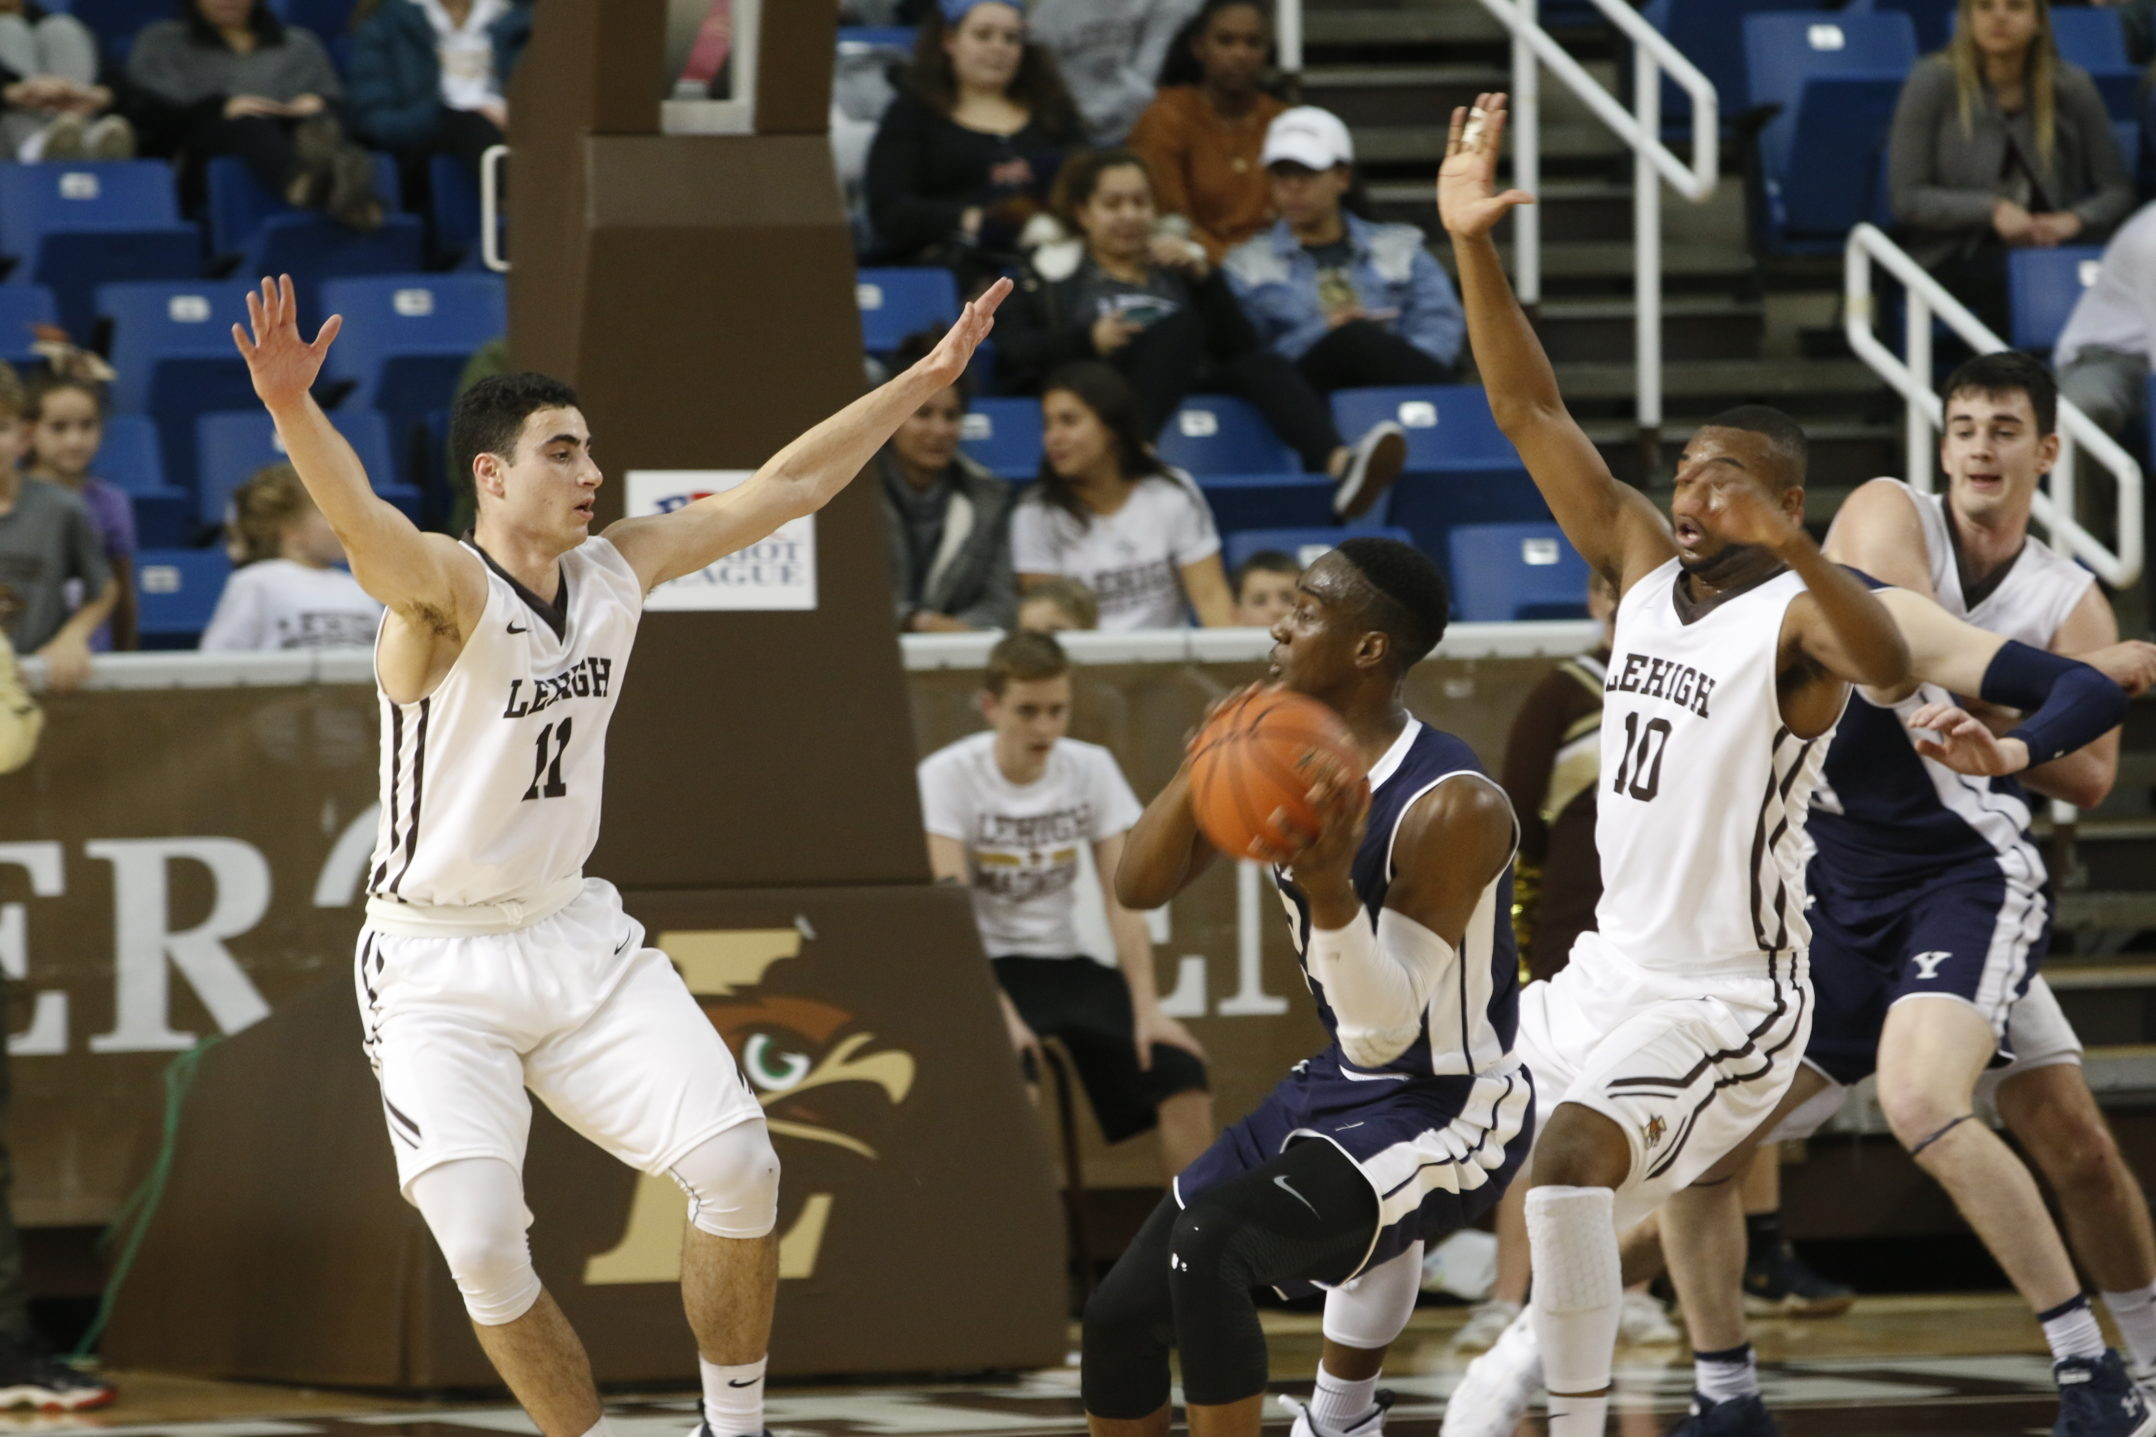 Lehigh sophomores Jordan Cohen and Ed Porter double team Yale forward Miye Oni in their matchup Wednesday, Dec. 6, 2017 at Stabler Arena. Lehigh lost the game, 86-77. (Matt Bonshak/B&W Staff).